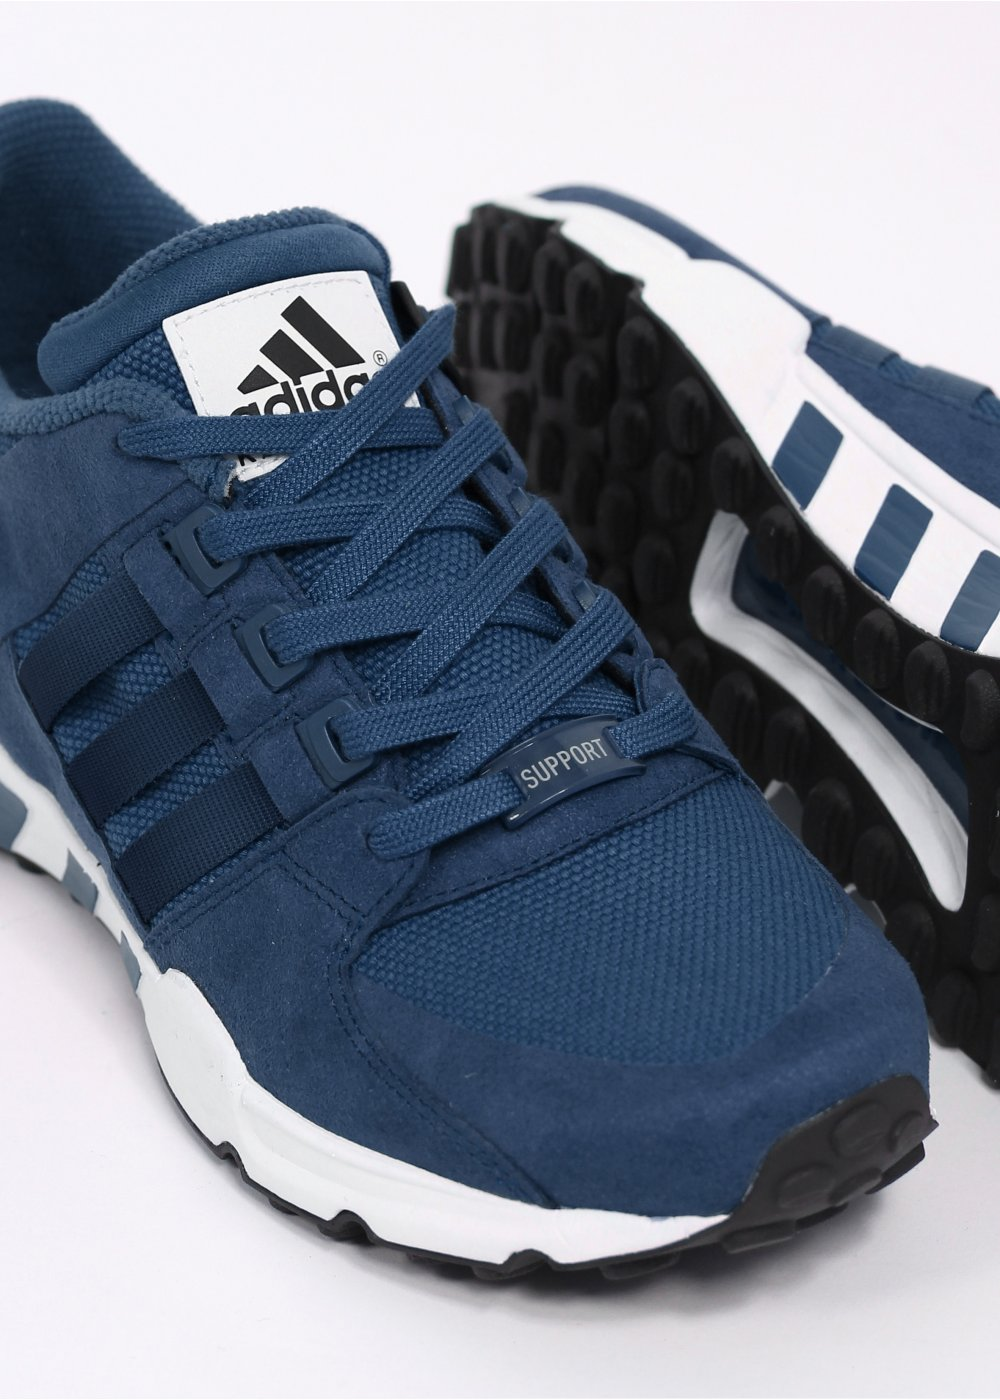 Adidas Originals Originals Top Ten Low Sneaker In Black: Adidas Originals Equipment EQT Running Support 'Tokyo